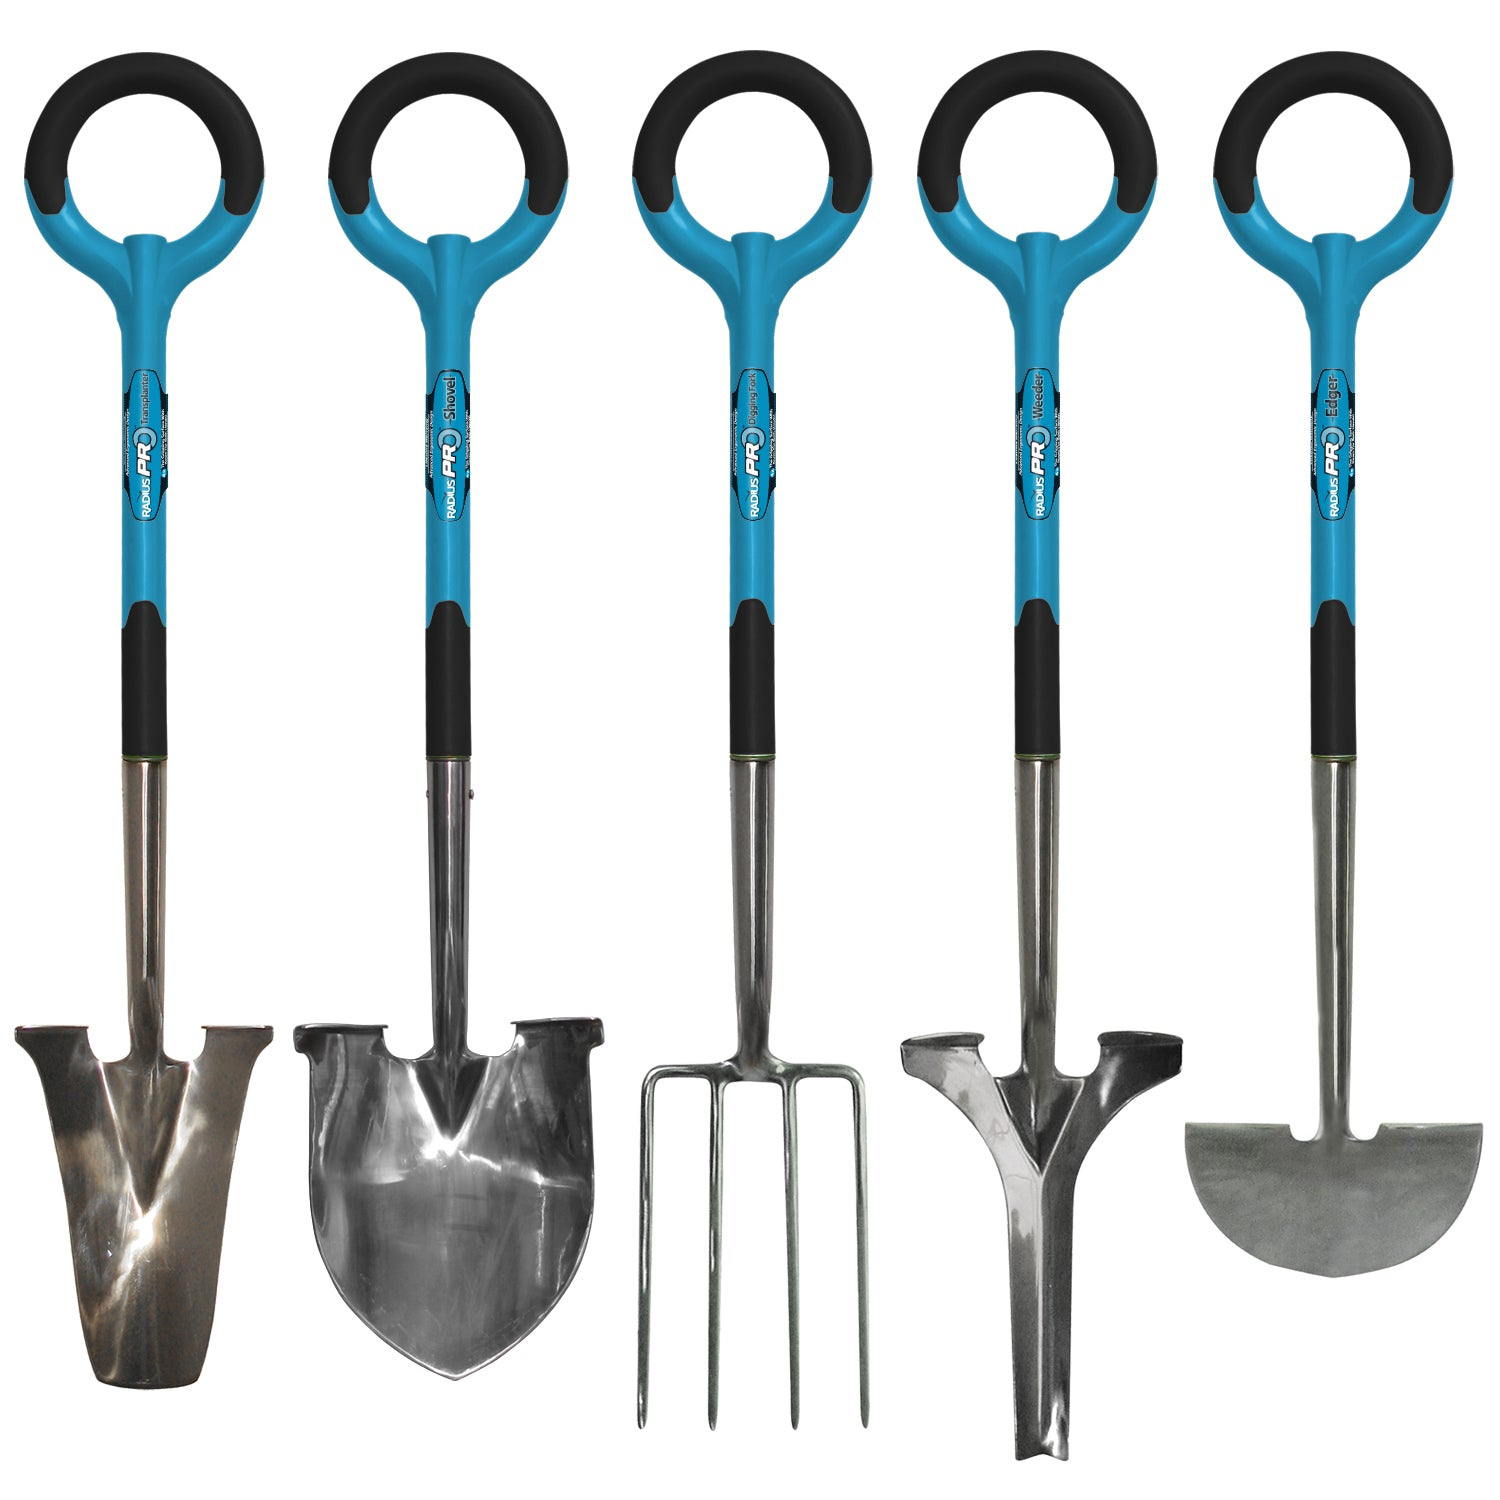 The garden tool review gardening tool reviews from a professional - Super Pro Tool Set